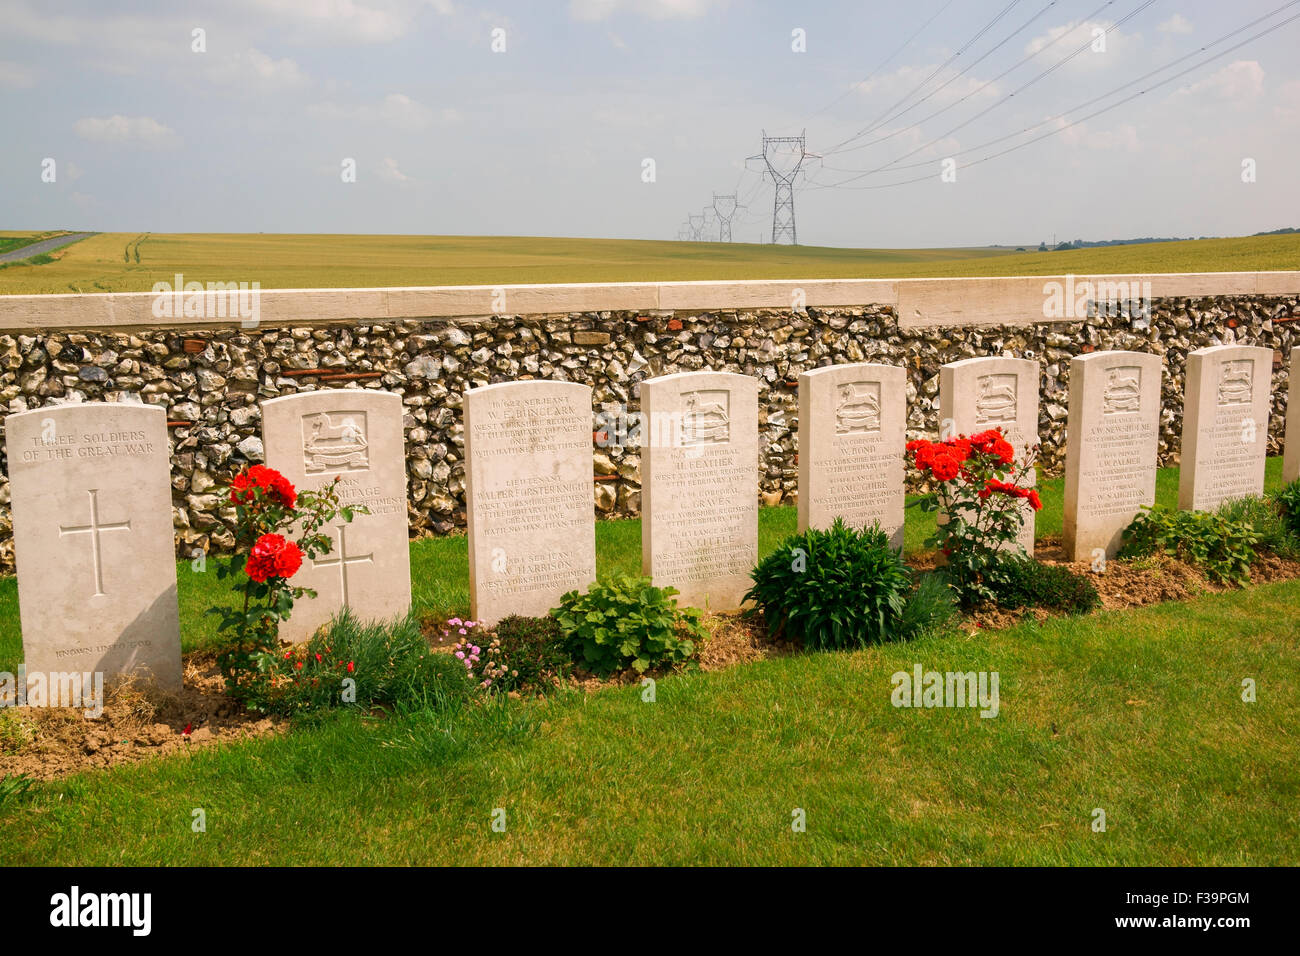 A poignant line of headstones in the Owl Trench WWI cemetery in the Battle of the Somme area of the pas de calais - Stock Image